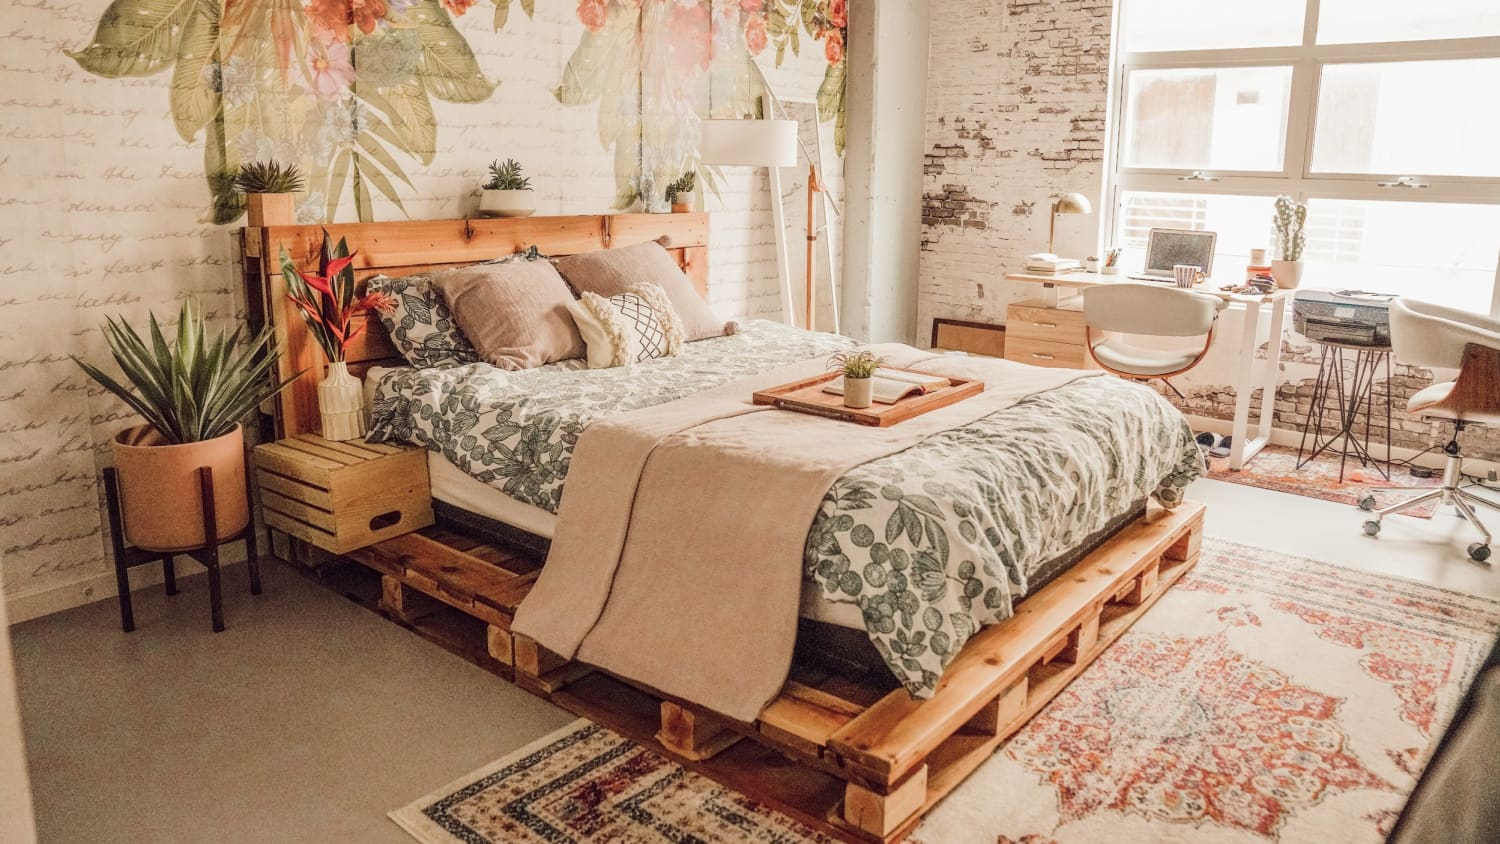 10 Diy Pallet Bed Ideas Easy Ways To Make A Pallet Bed Apartment Therapy